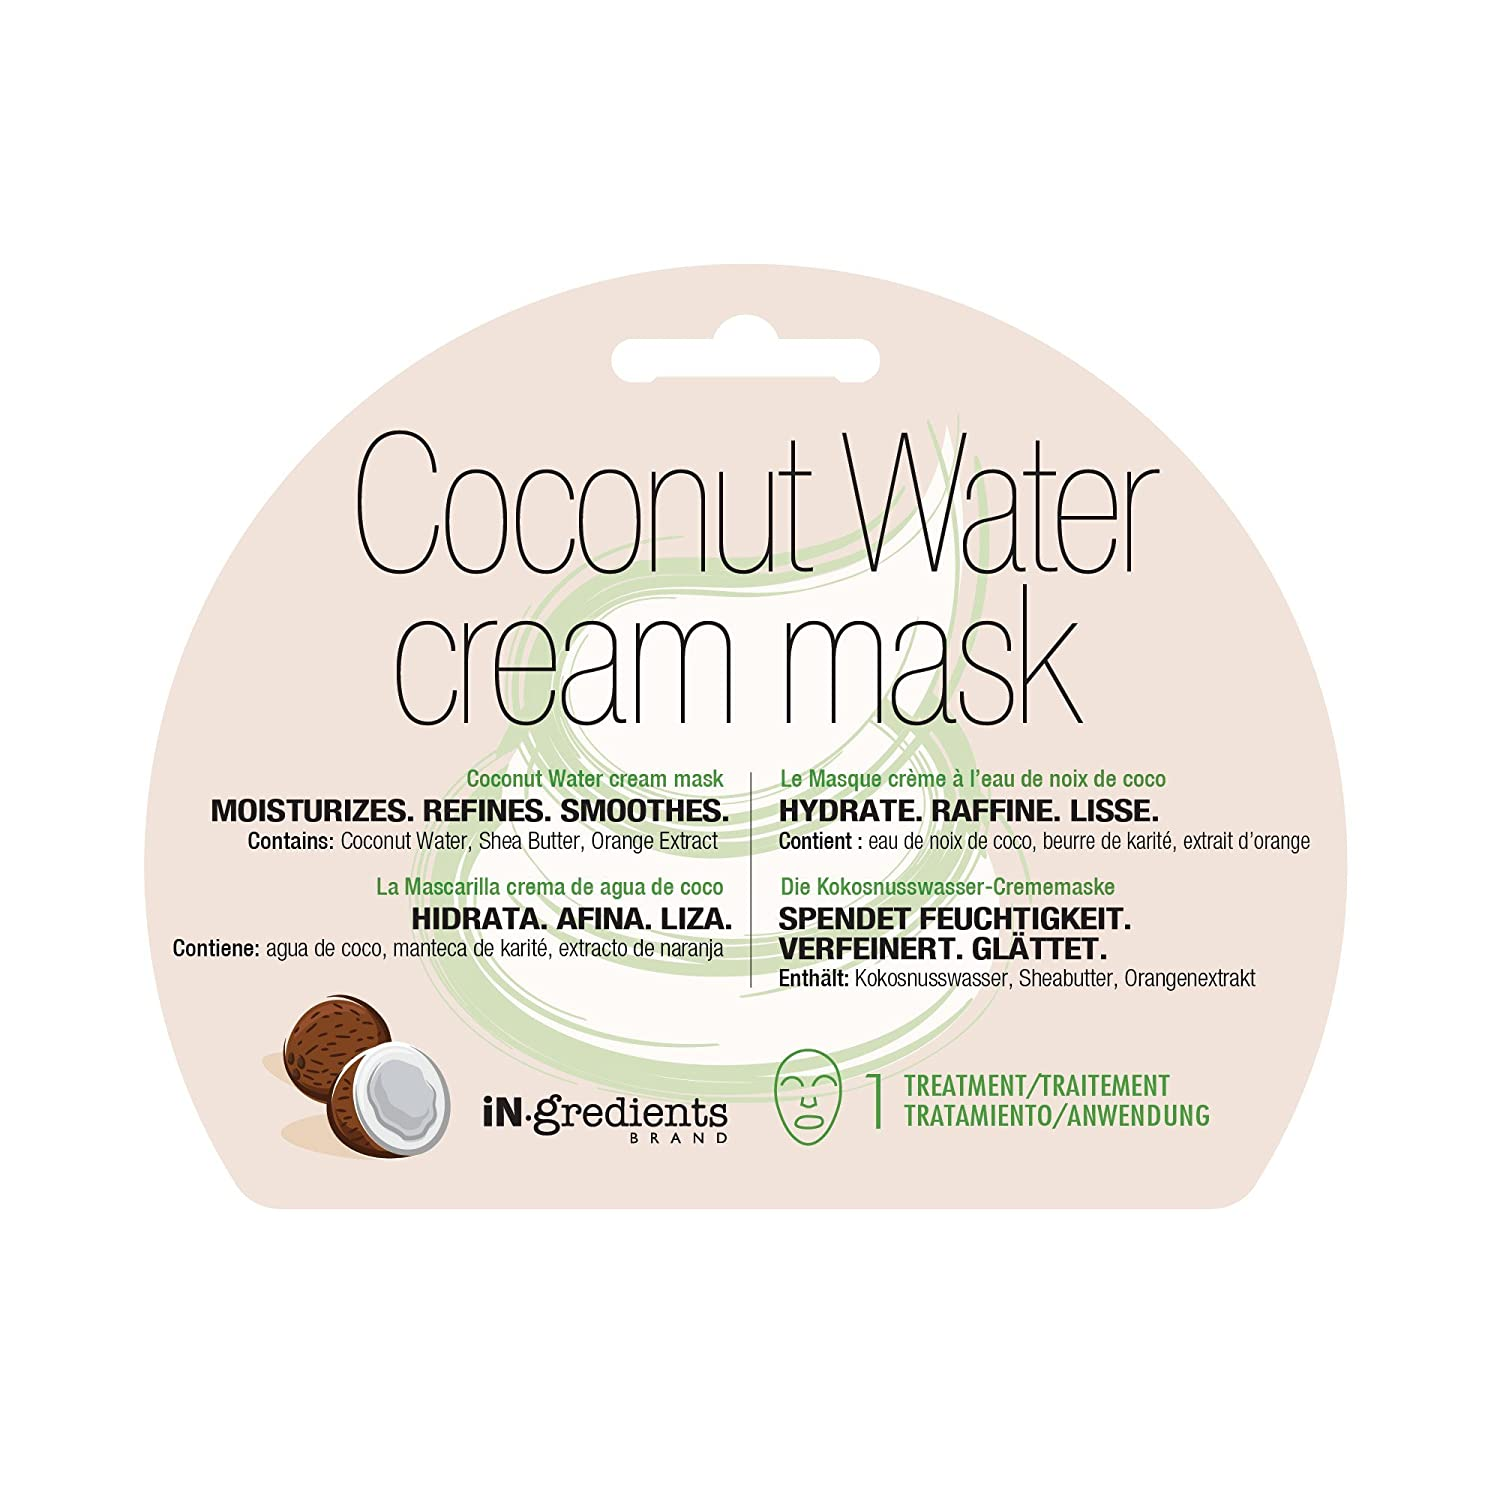 Amazon.com : iN.gredients Cream Mask, Coconut Water - Moisturizing, Cleansing, Exfoliating Pore Refiner for Dehydrated, Sensitive Skin - Made in Korea : ...